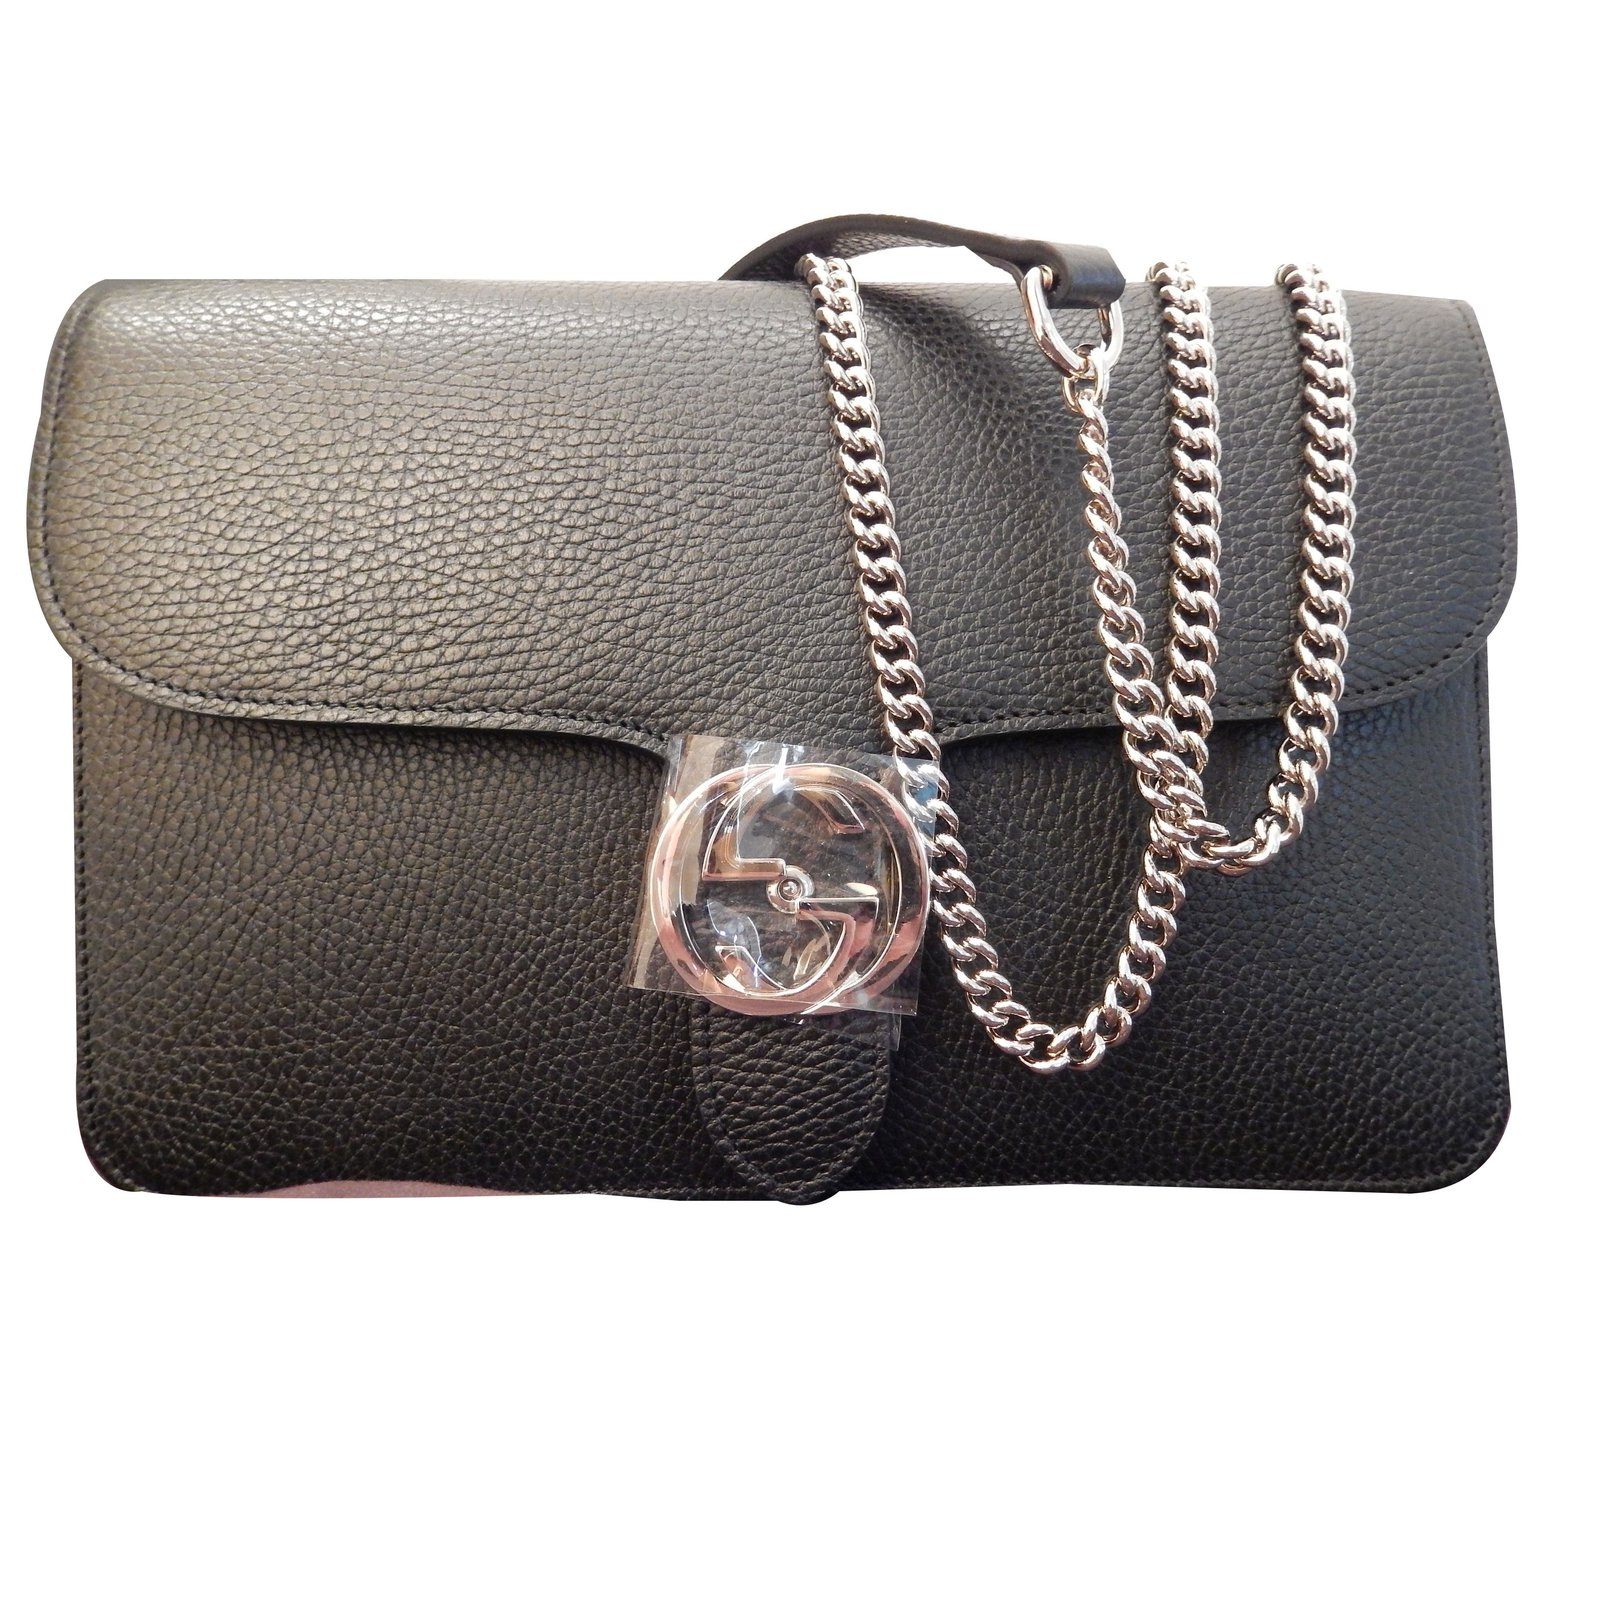 3d02f8a7310a Sacs à main Gucci Sac à main Gucci Interlocking Cuir Noir ref.67105 ...